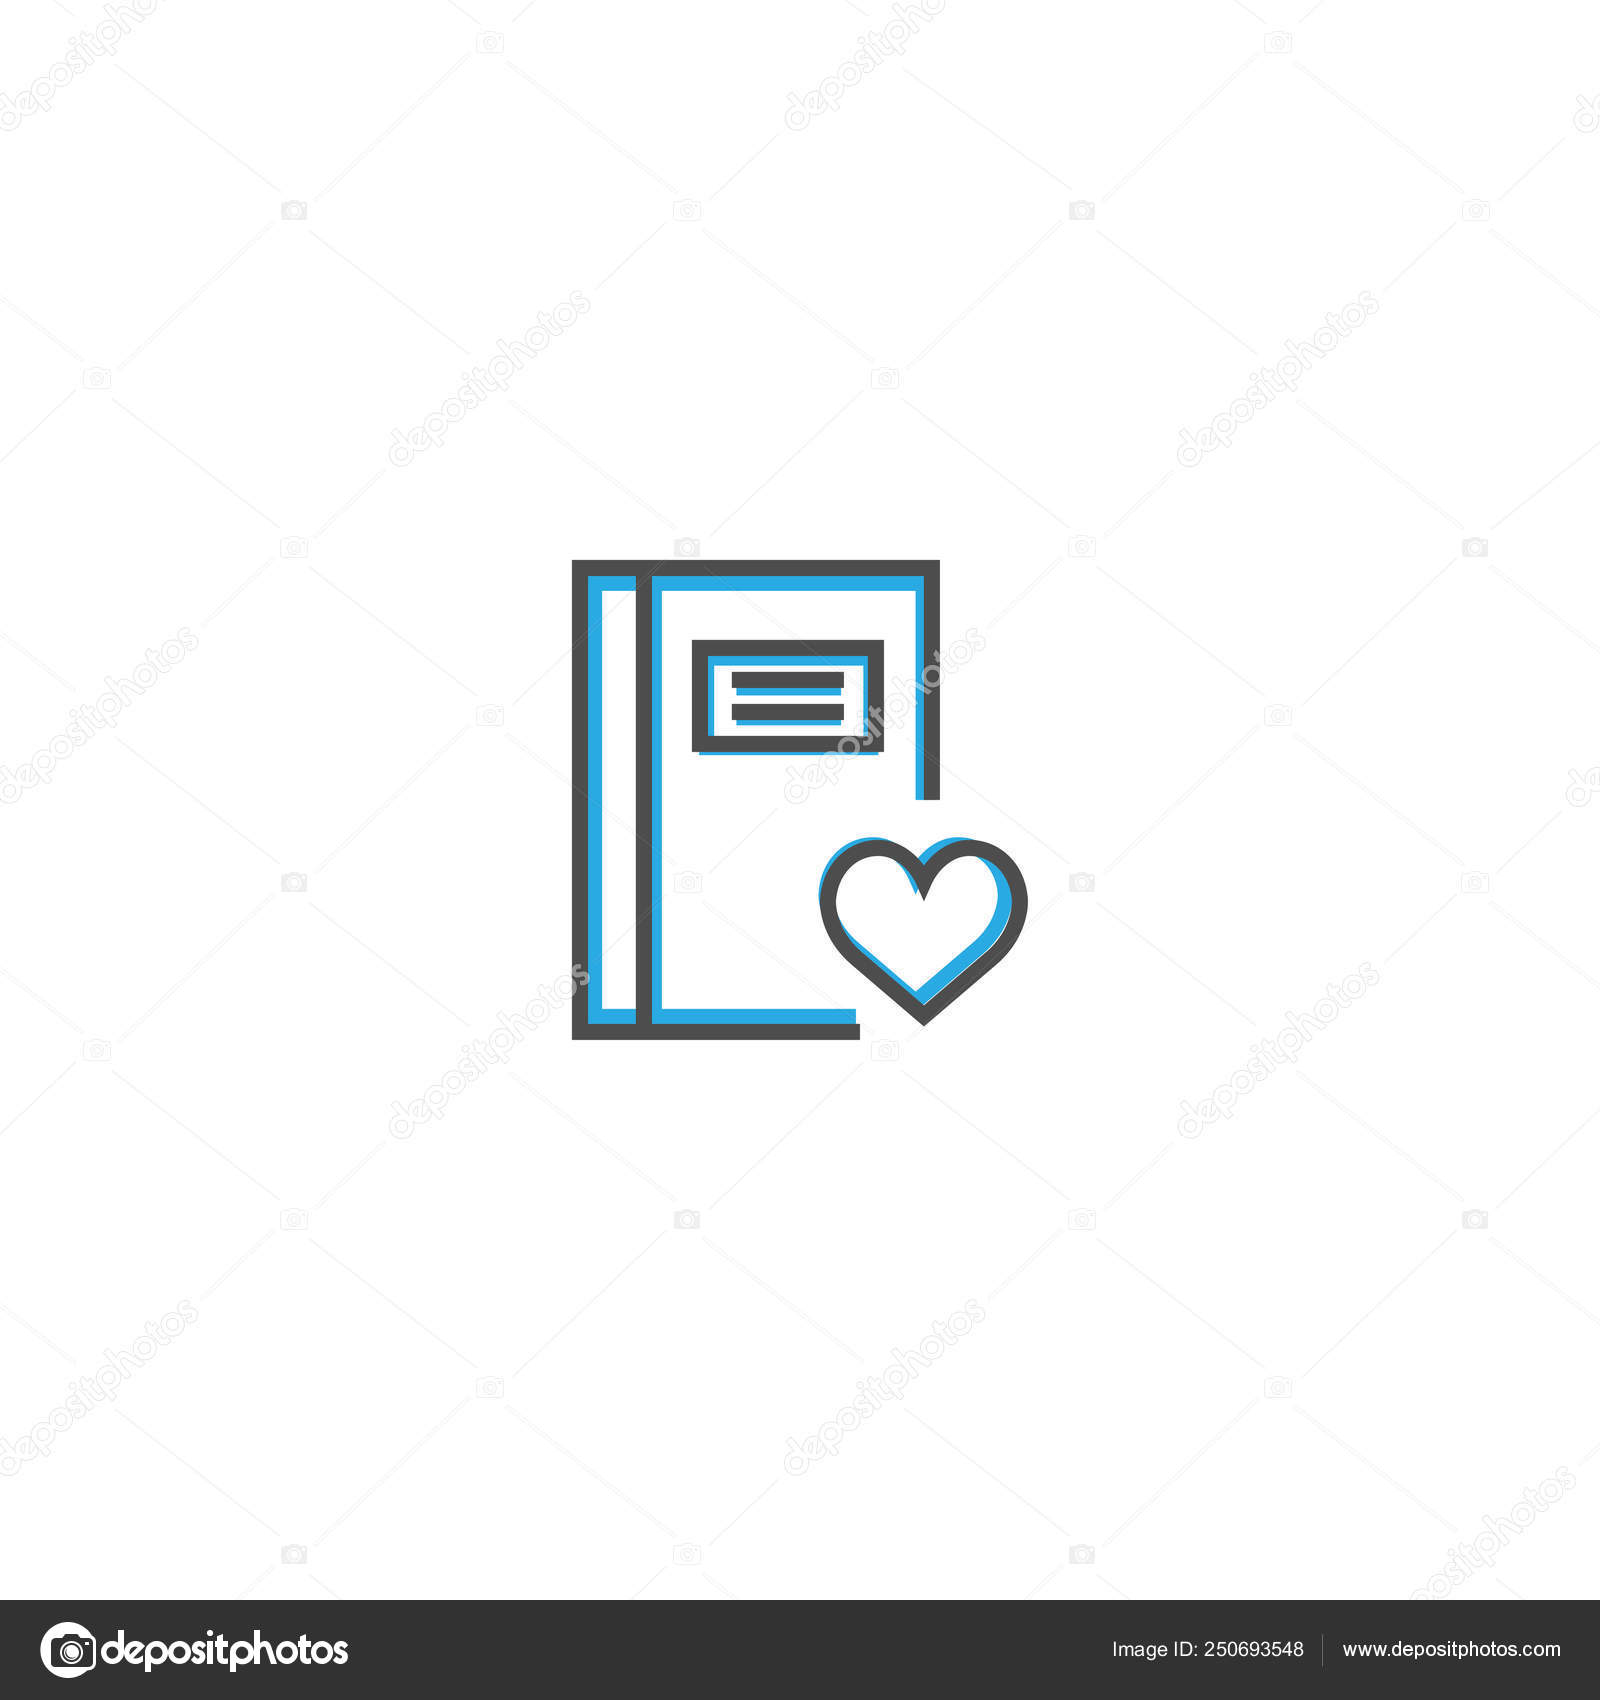 Notebook icon design  Interaction icon line vector illustration